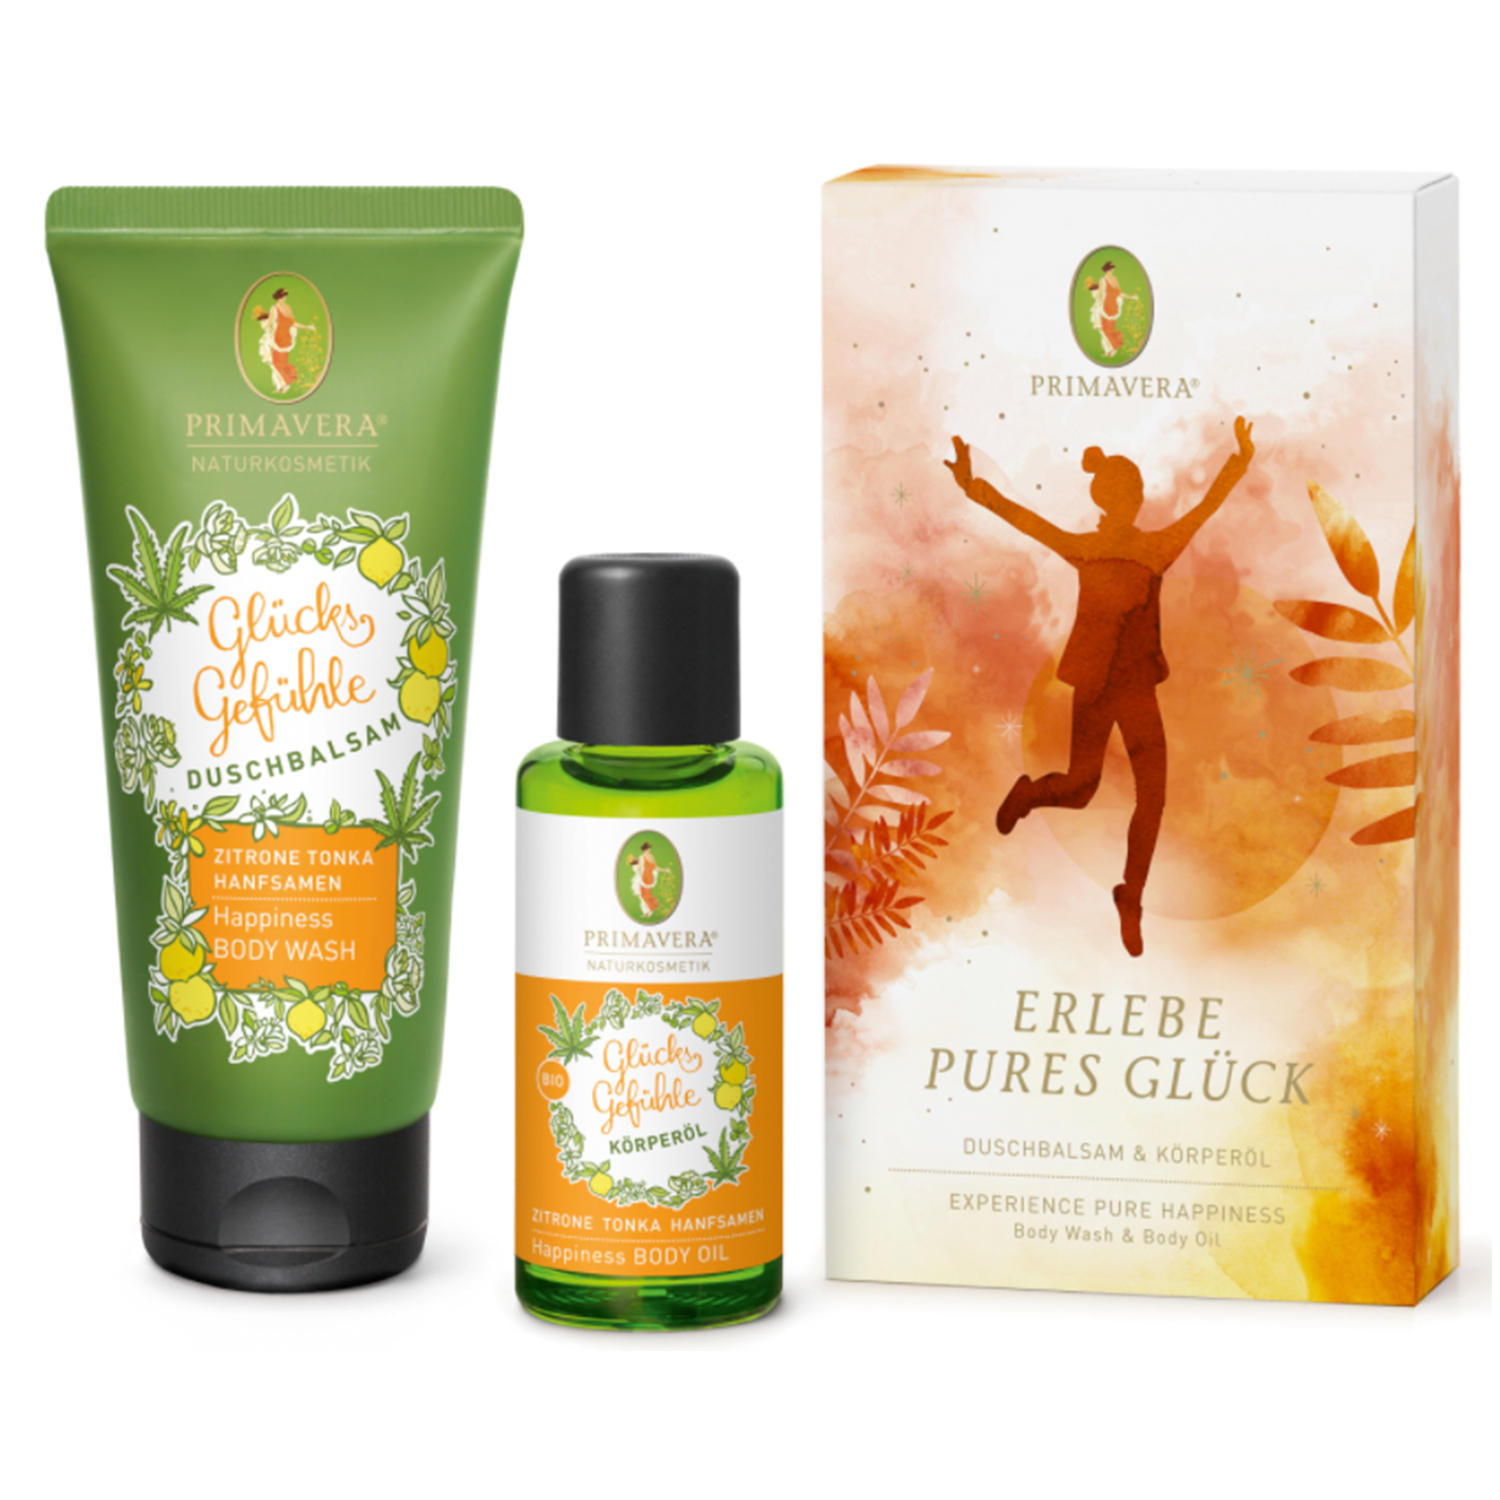 Experience pure happiness gift set